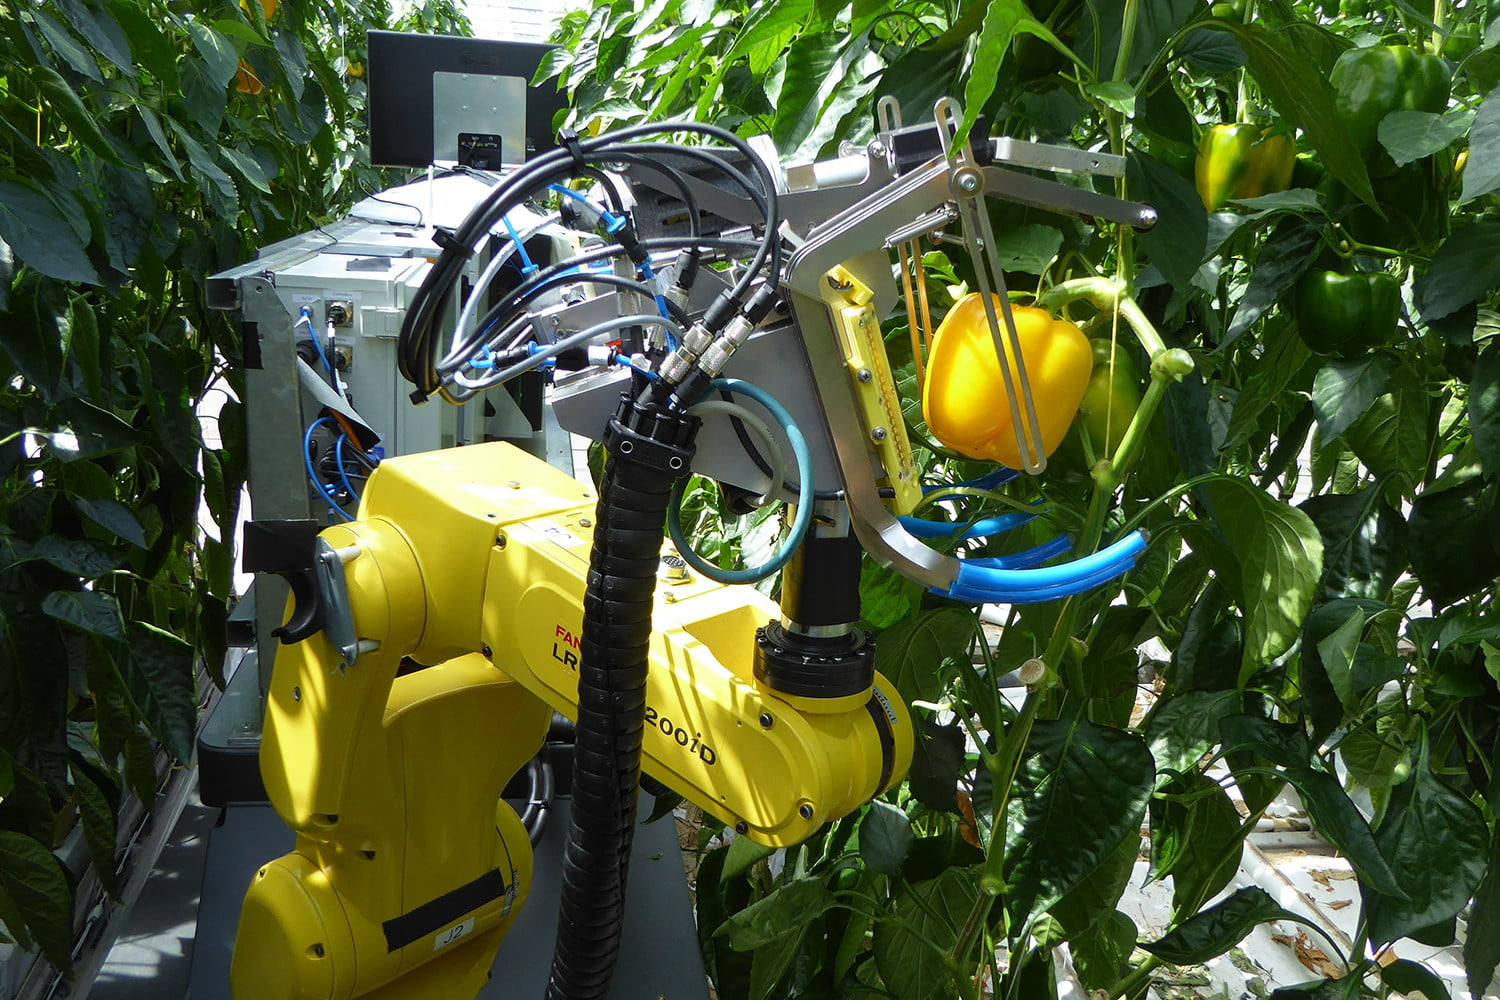 The future of farming is in robots' hands, and they're learning to use them